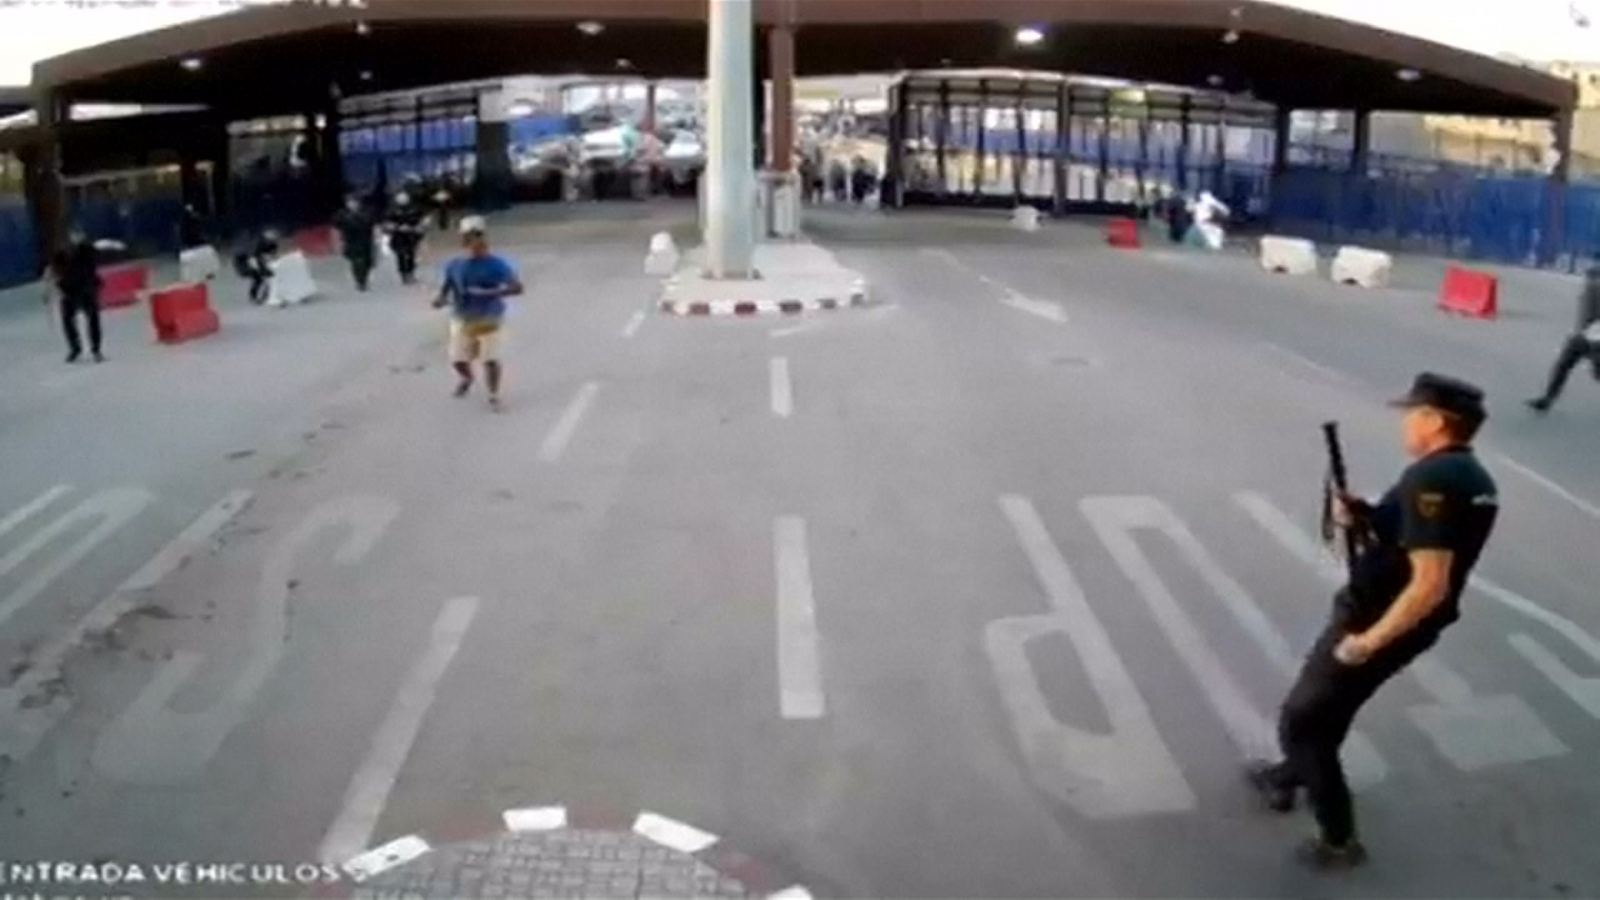 spanish-police-attacked-by-knife-wielding-man-on-moroccan-border